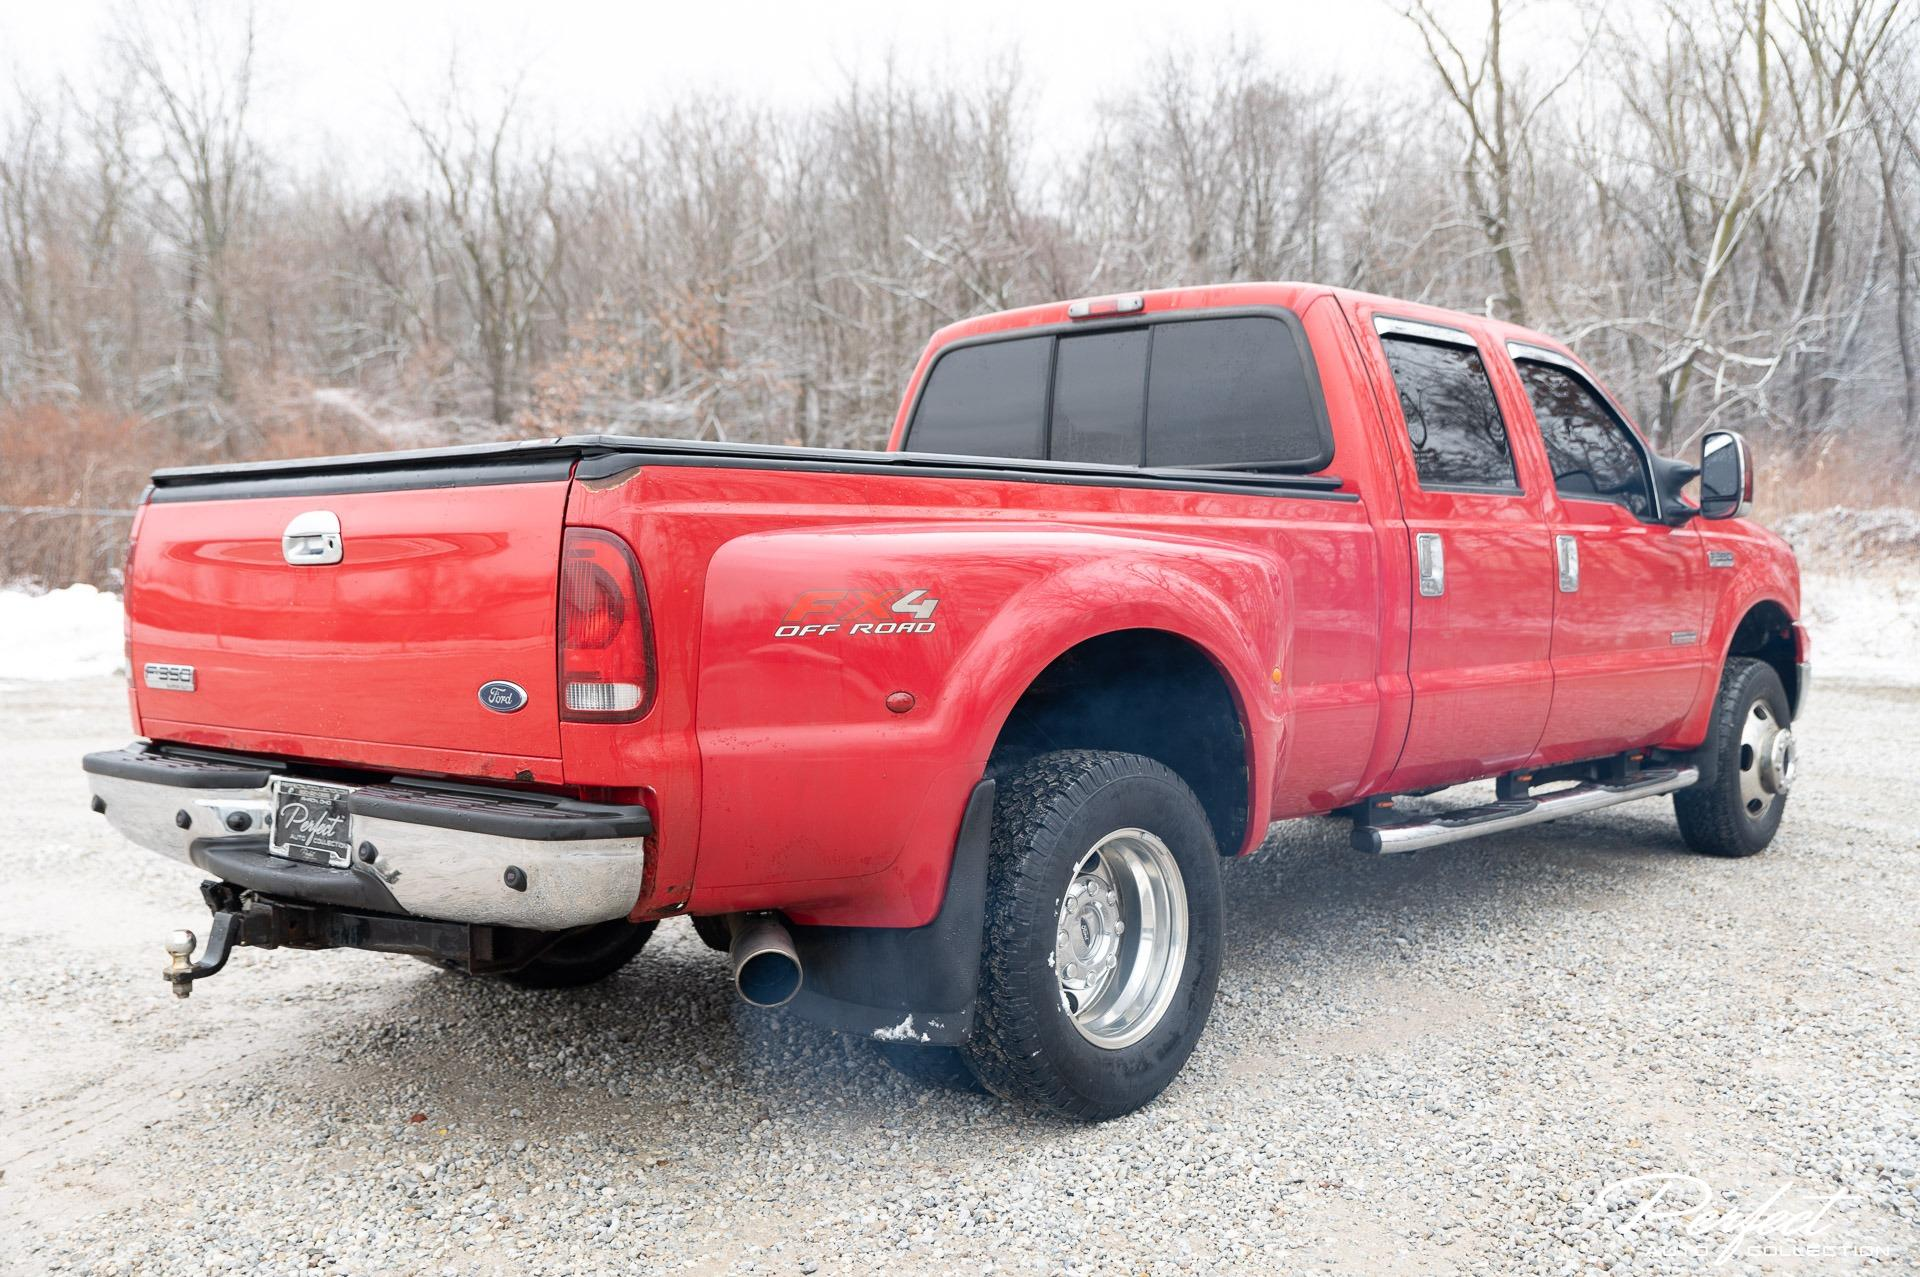 Used 2006 Ford F-350 Super Duty Lariat for sale $18,495 at Perfect Auto Collection in Akron OH 44310 4